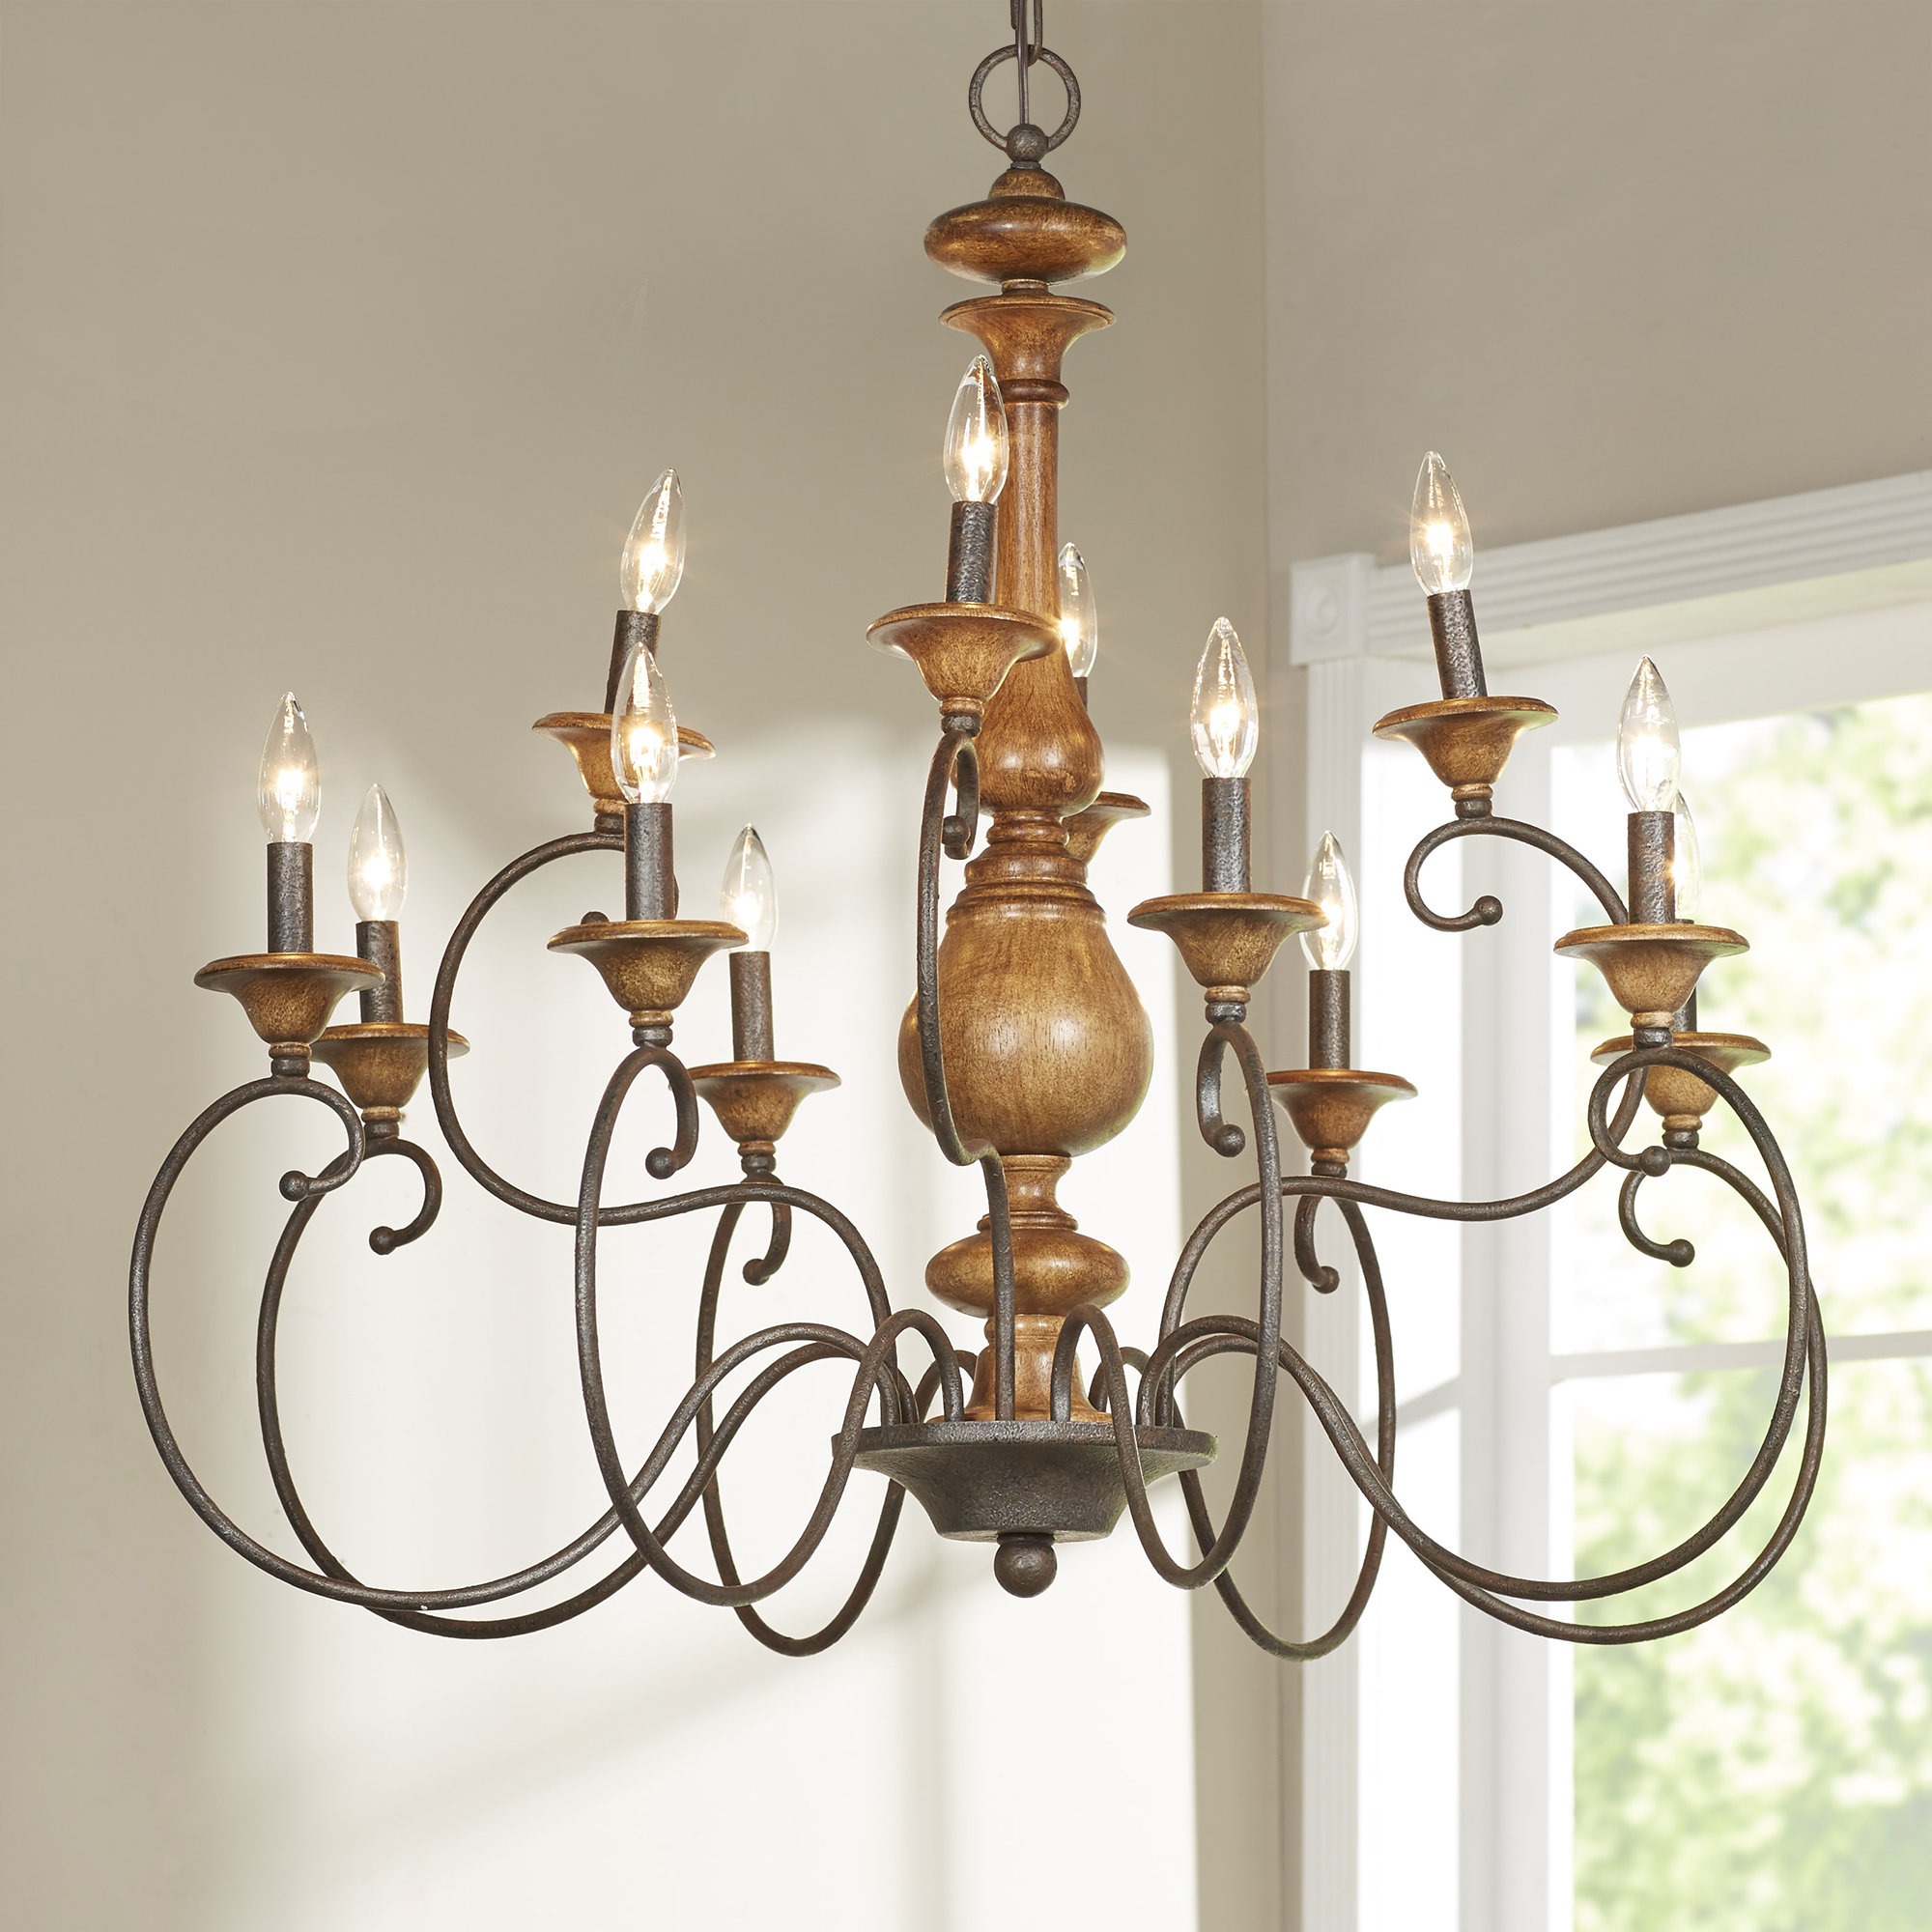 Farmhouse & Rustic Lark Manor Chandeliers | Birch Lane for Corneau 5-Light Chandeliers (Image 16 of 30)